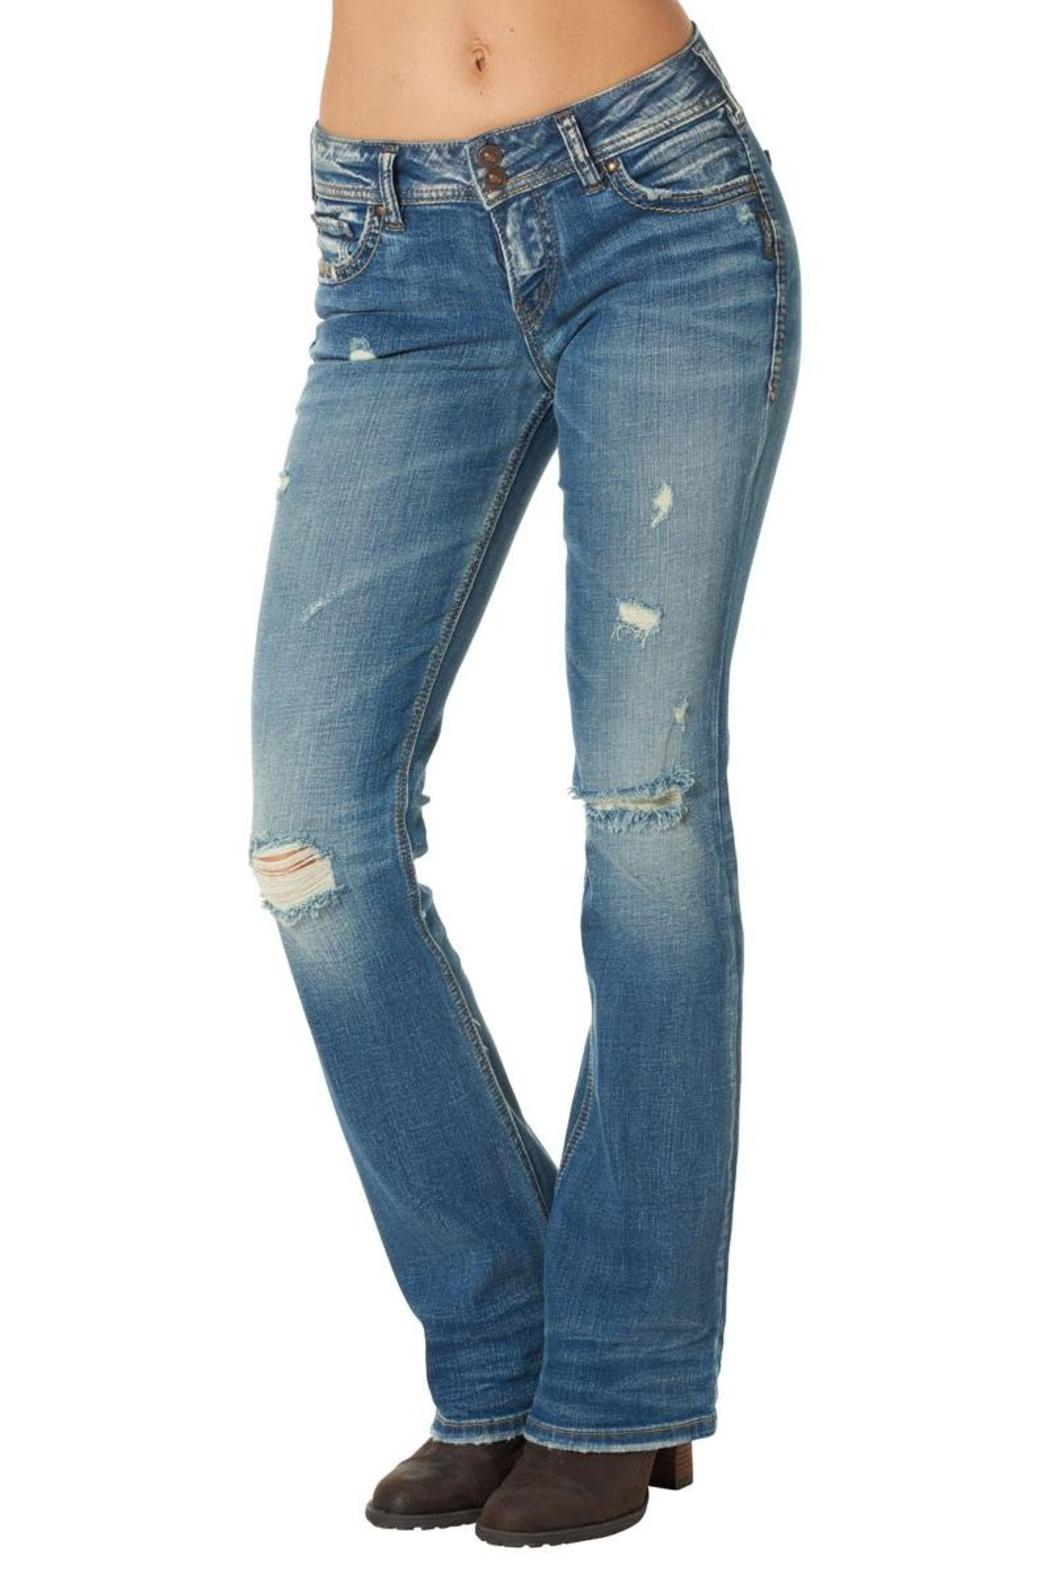 Silver Jeans Co. Suki Distressed-Bootcut - Main Image